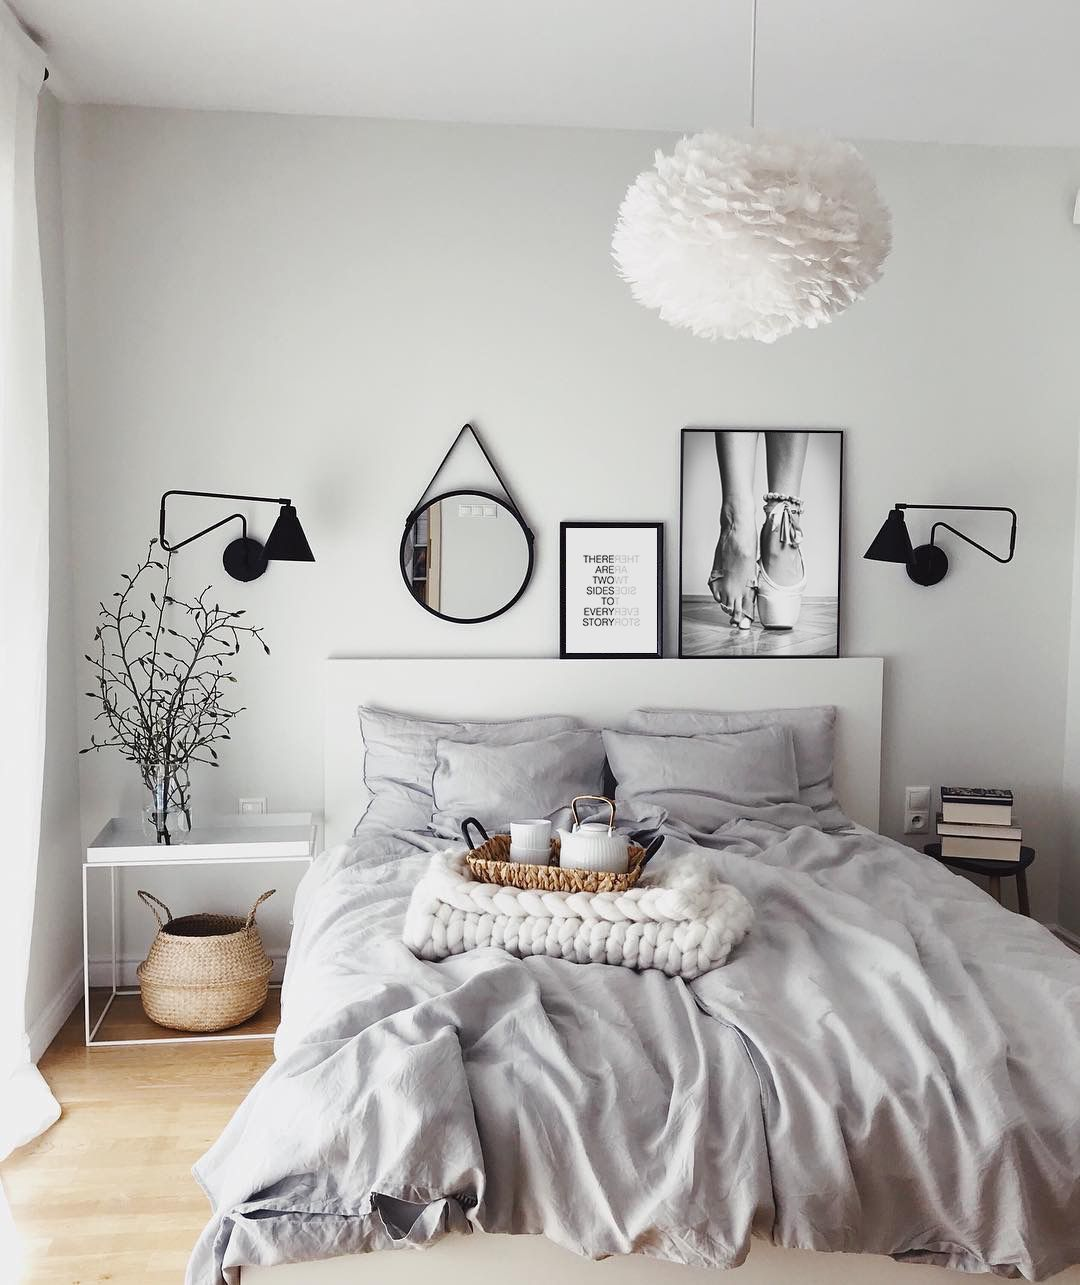 20 Bedroom Chandelier Designs Decorating Ideas: Fluffy Chandelier, White Feathers Chandelier, Grey Sheets